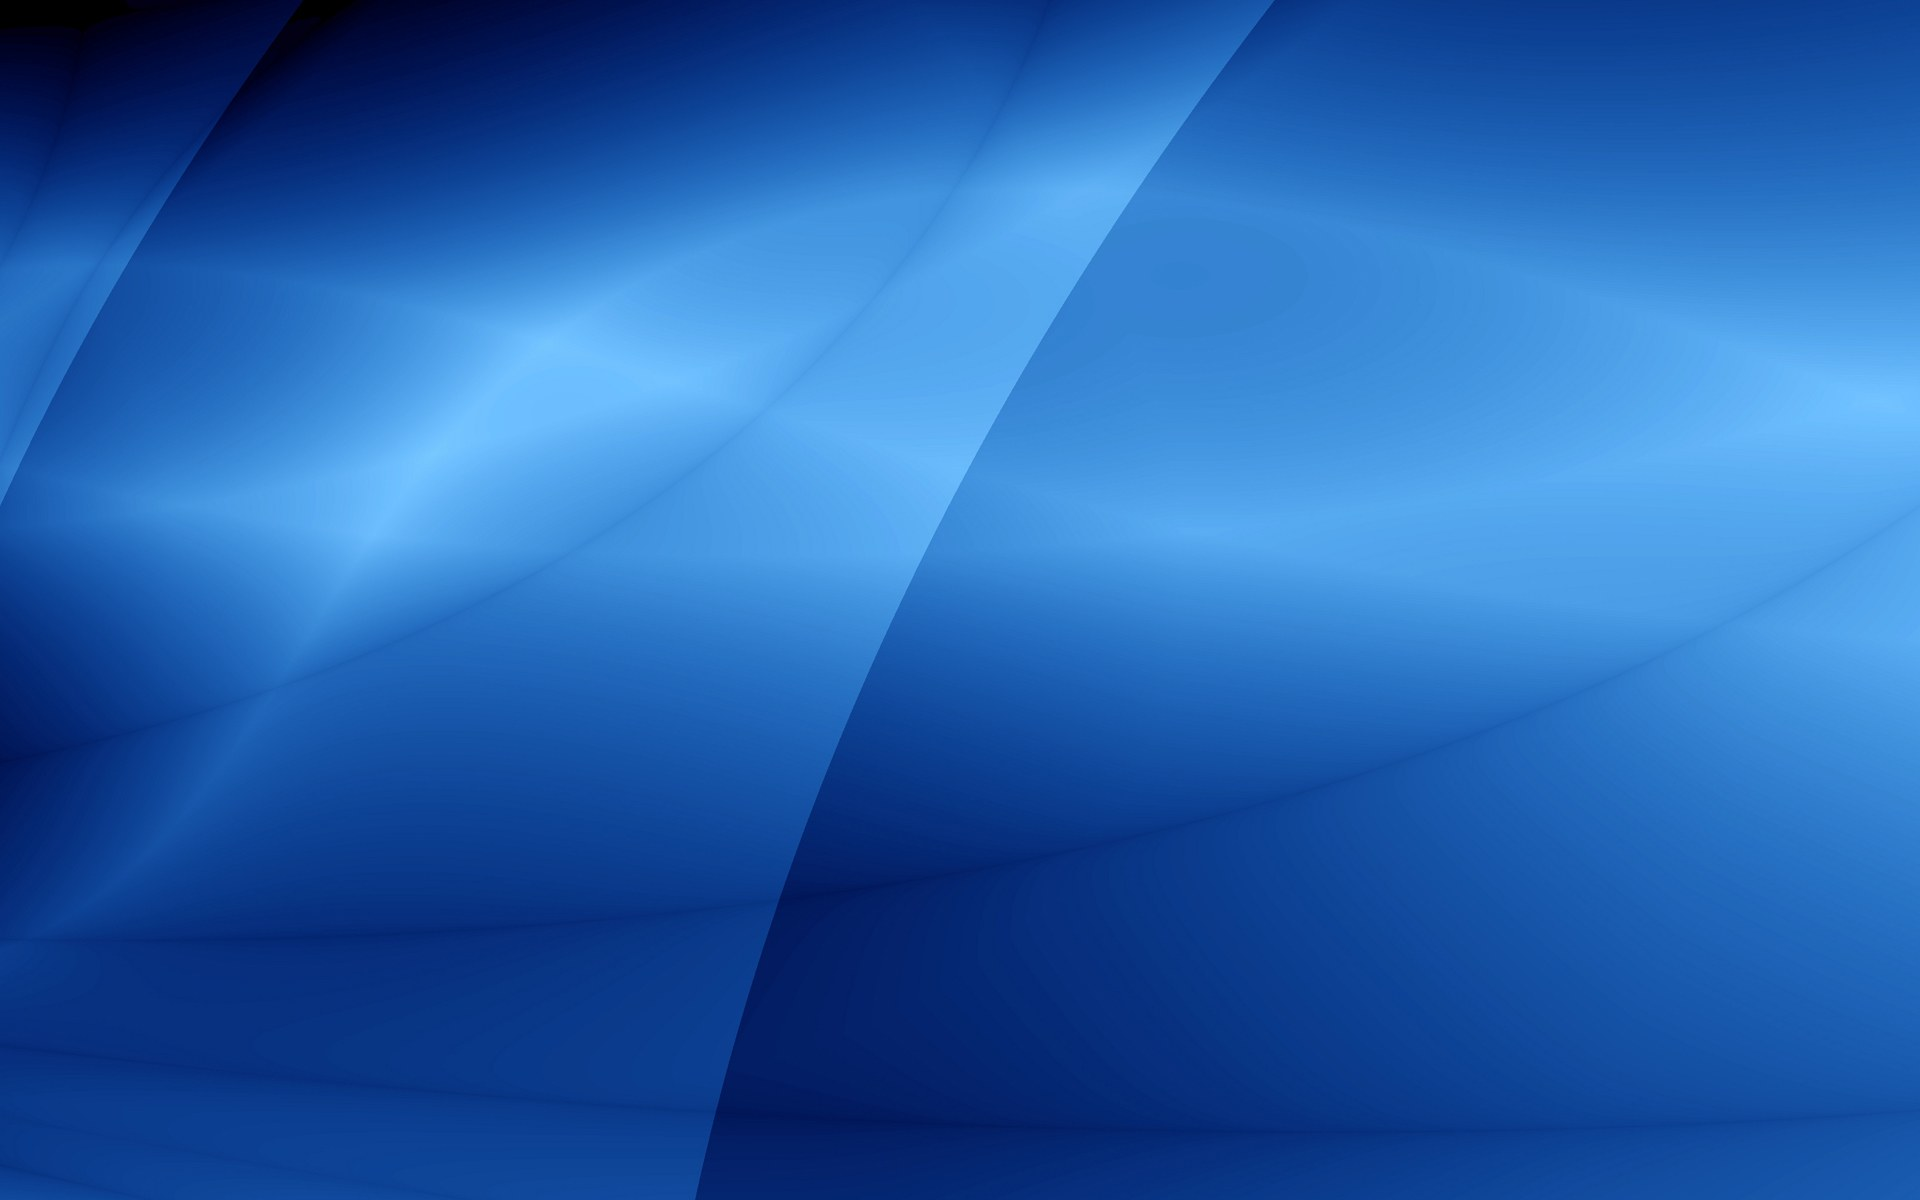 Blue Abstract Background Blue Abstract 1920x1200